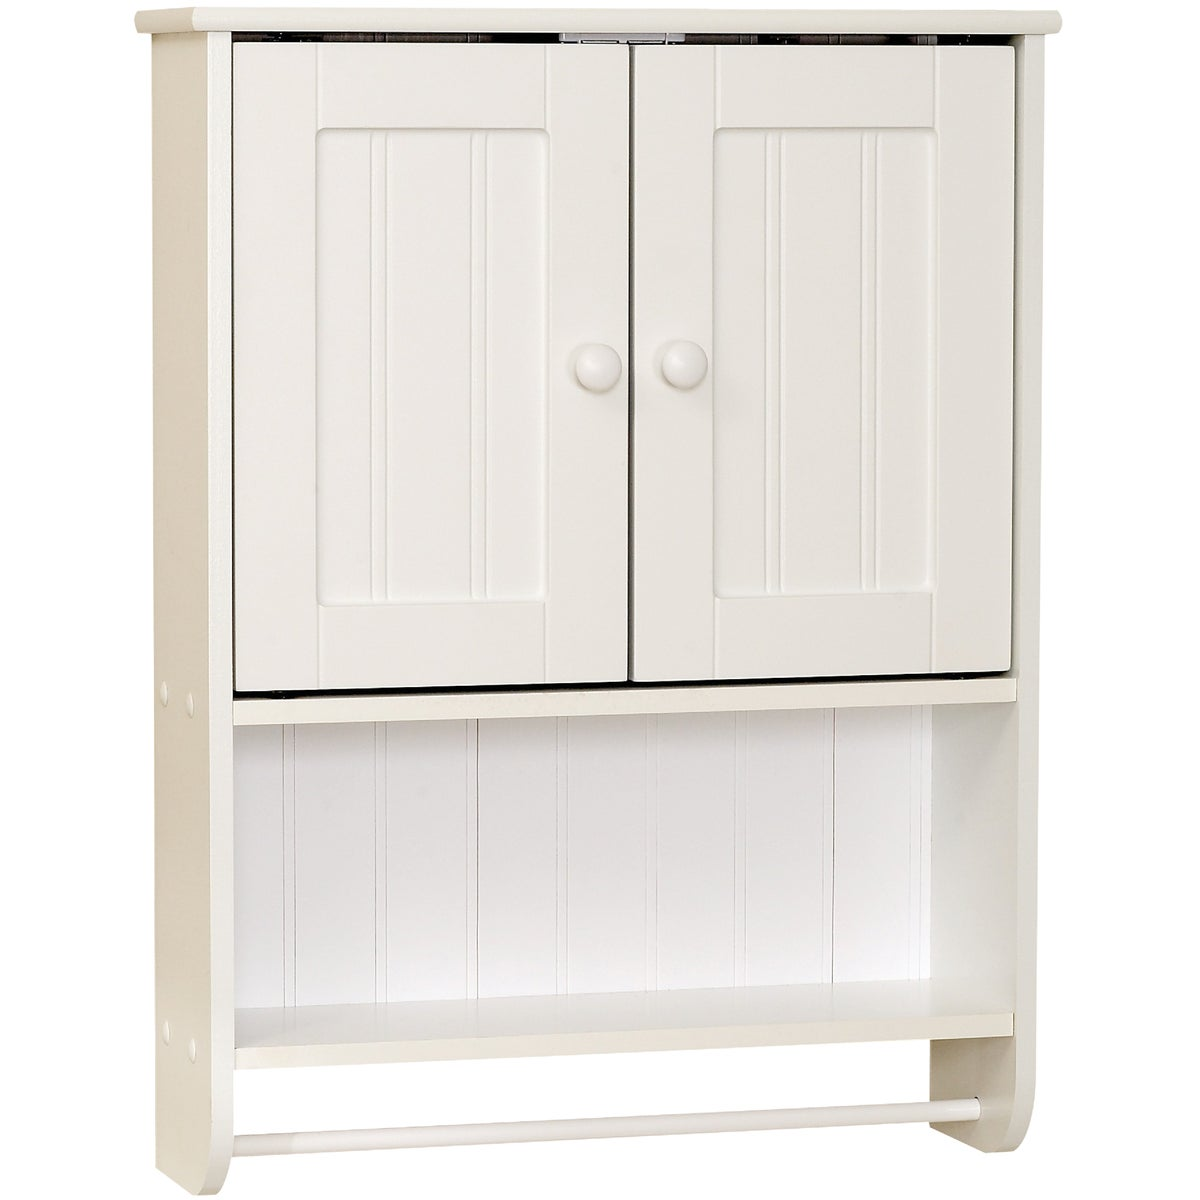 WHT COTTAGE WALL CABINET - 9114W by Zenith Prod Corp